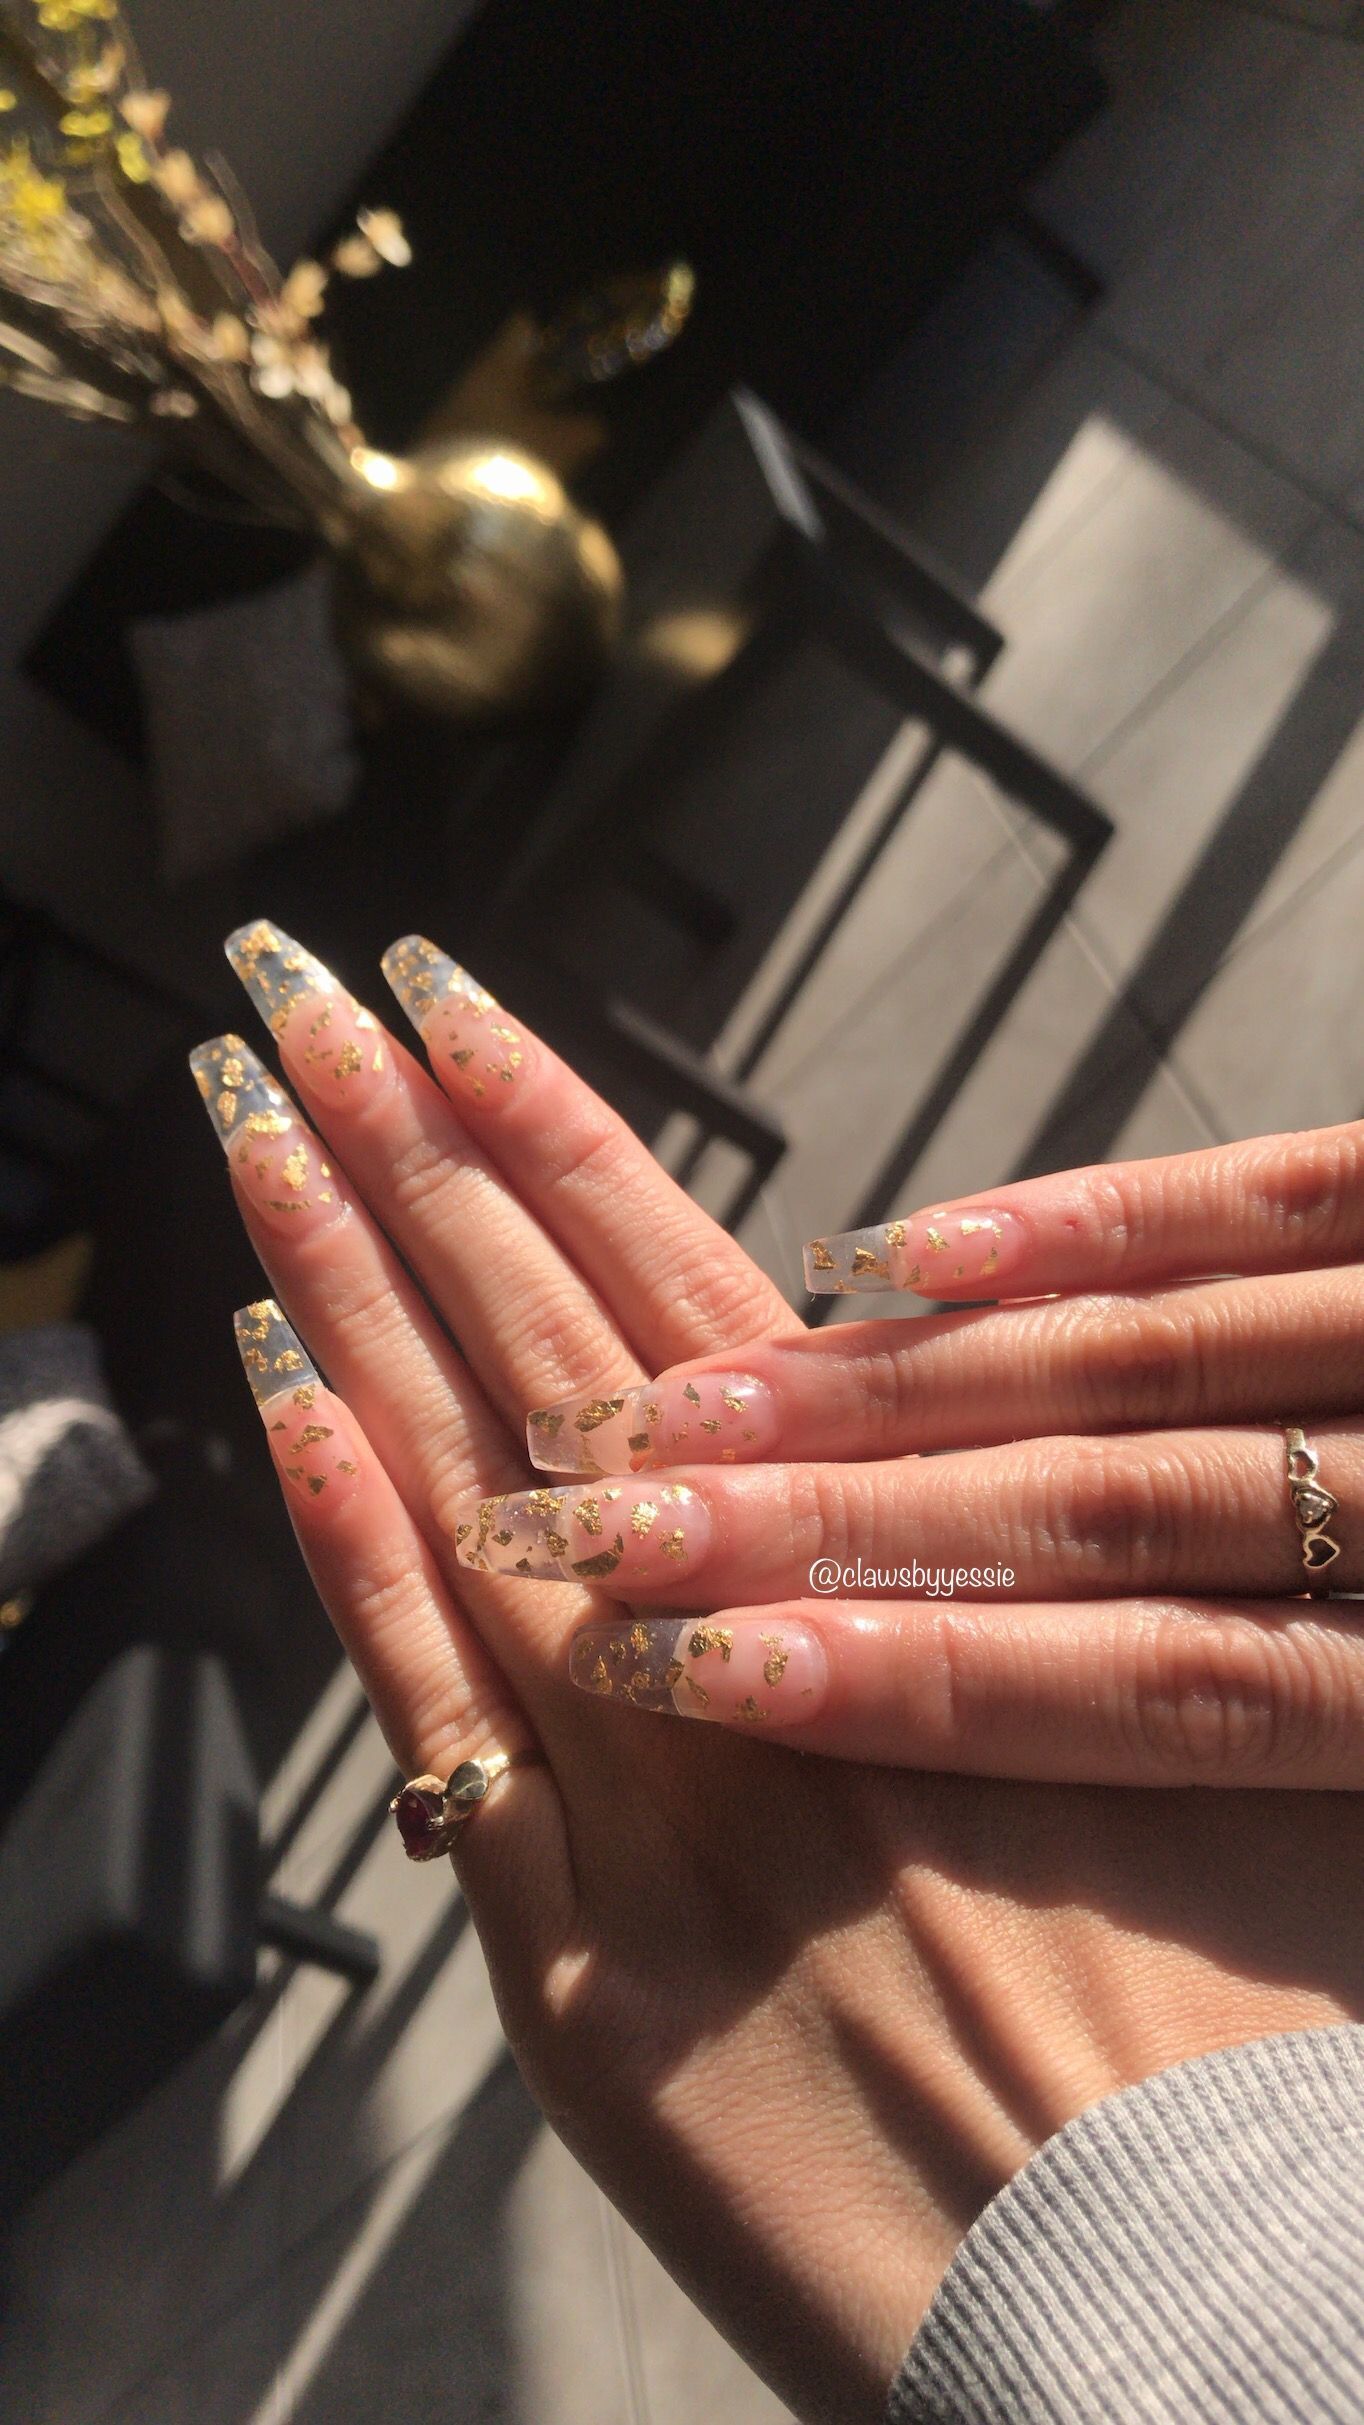 Gold Flake Nails Clawsbyyessie In 2020 Gold Acrylic Nails Coffin Nails Designs Long Acrylic Nails